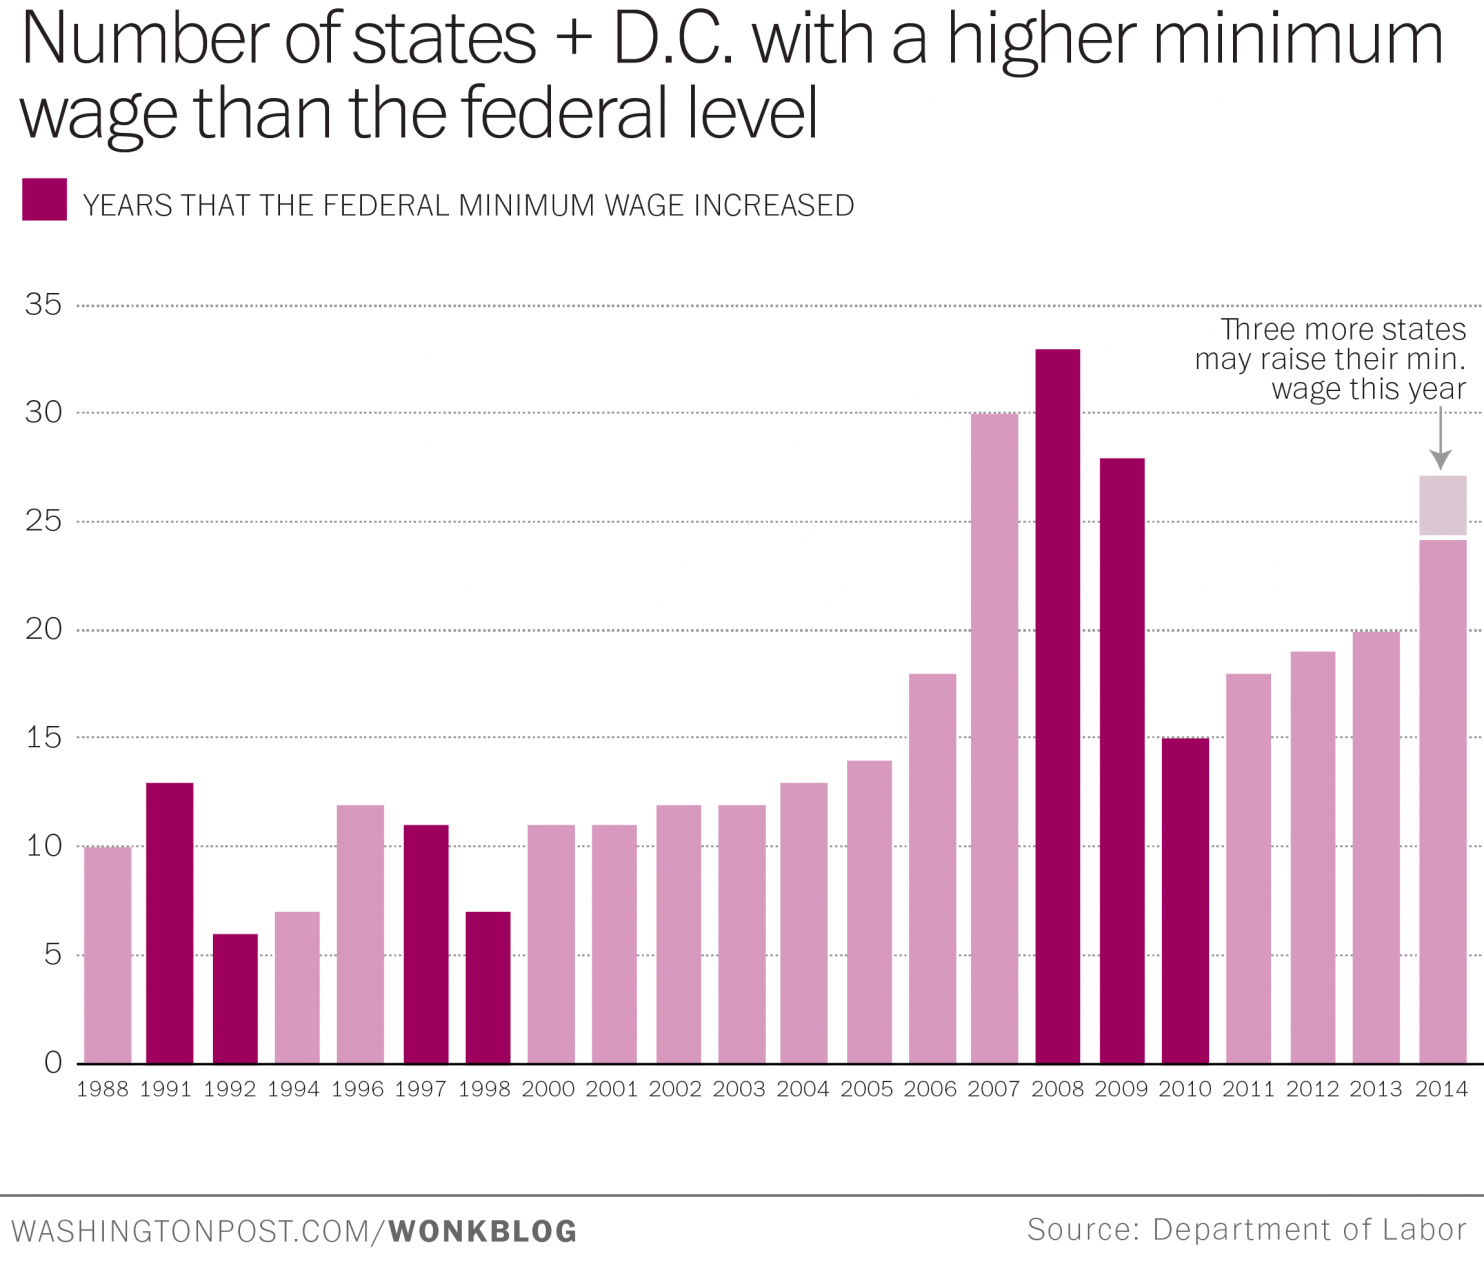 http://www.ritholtz.com/blog/2014/11/the-spread-of-state-minimum-wage-laws-is-making-congress-look-bad/